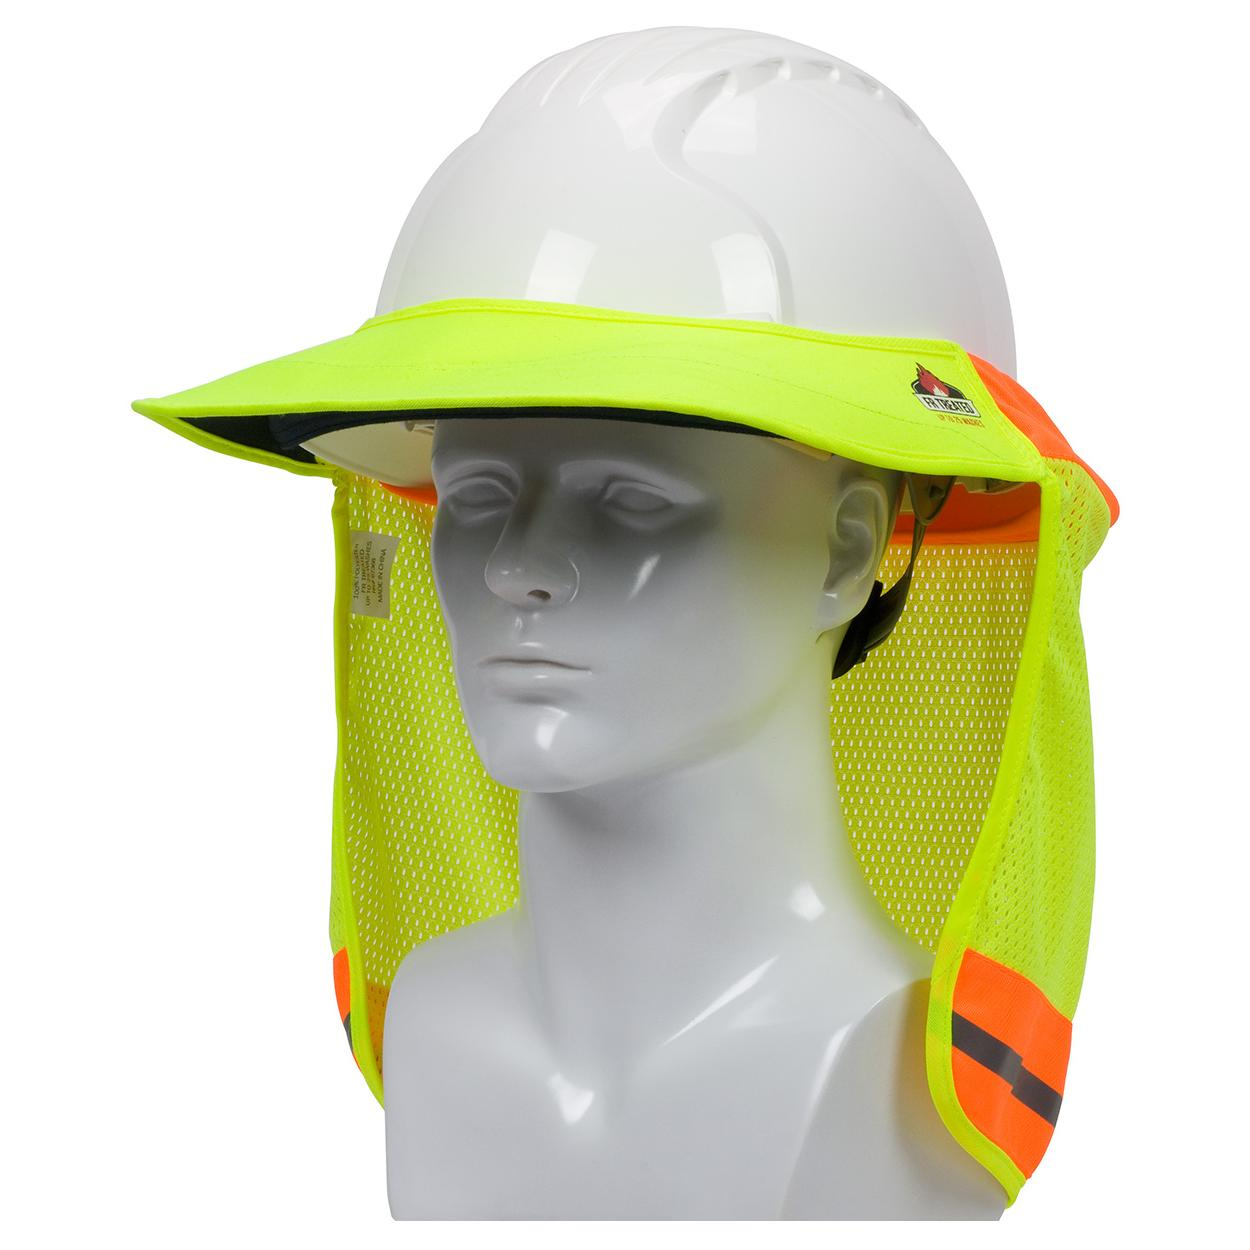 a767c70b PIP 396-801FR FR Treated Hi-Vis Hard Hat Visor and Neck Shade ...